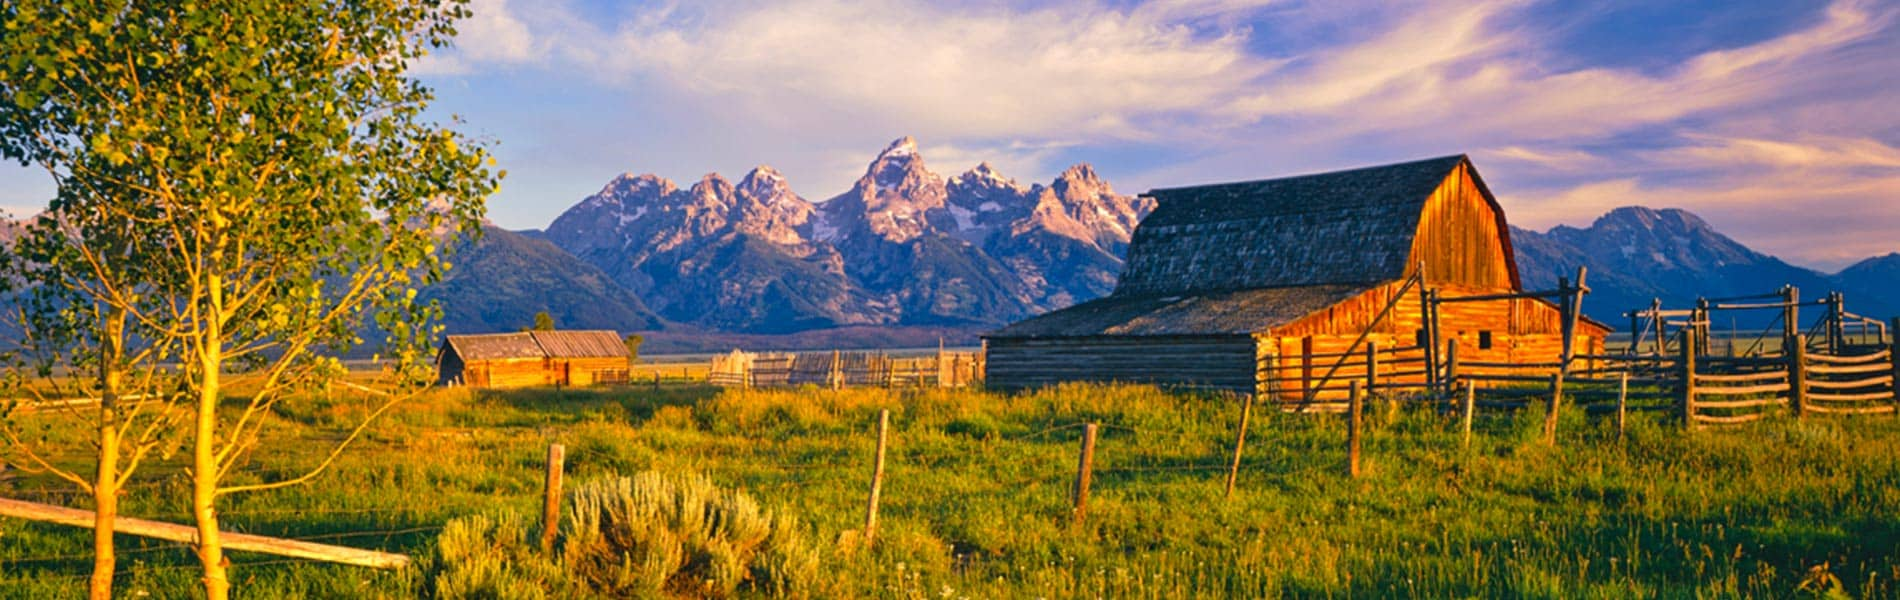 Jackson Hole and mountains